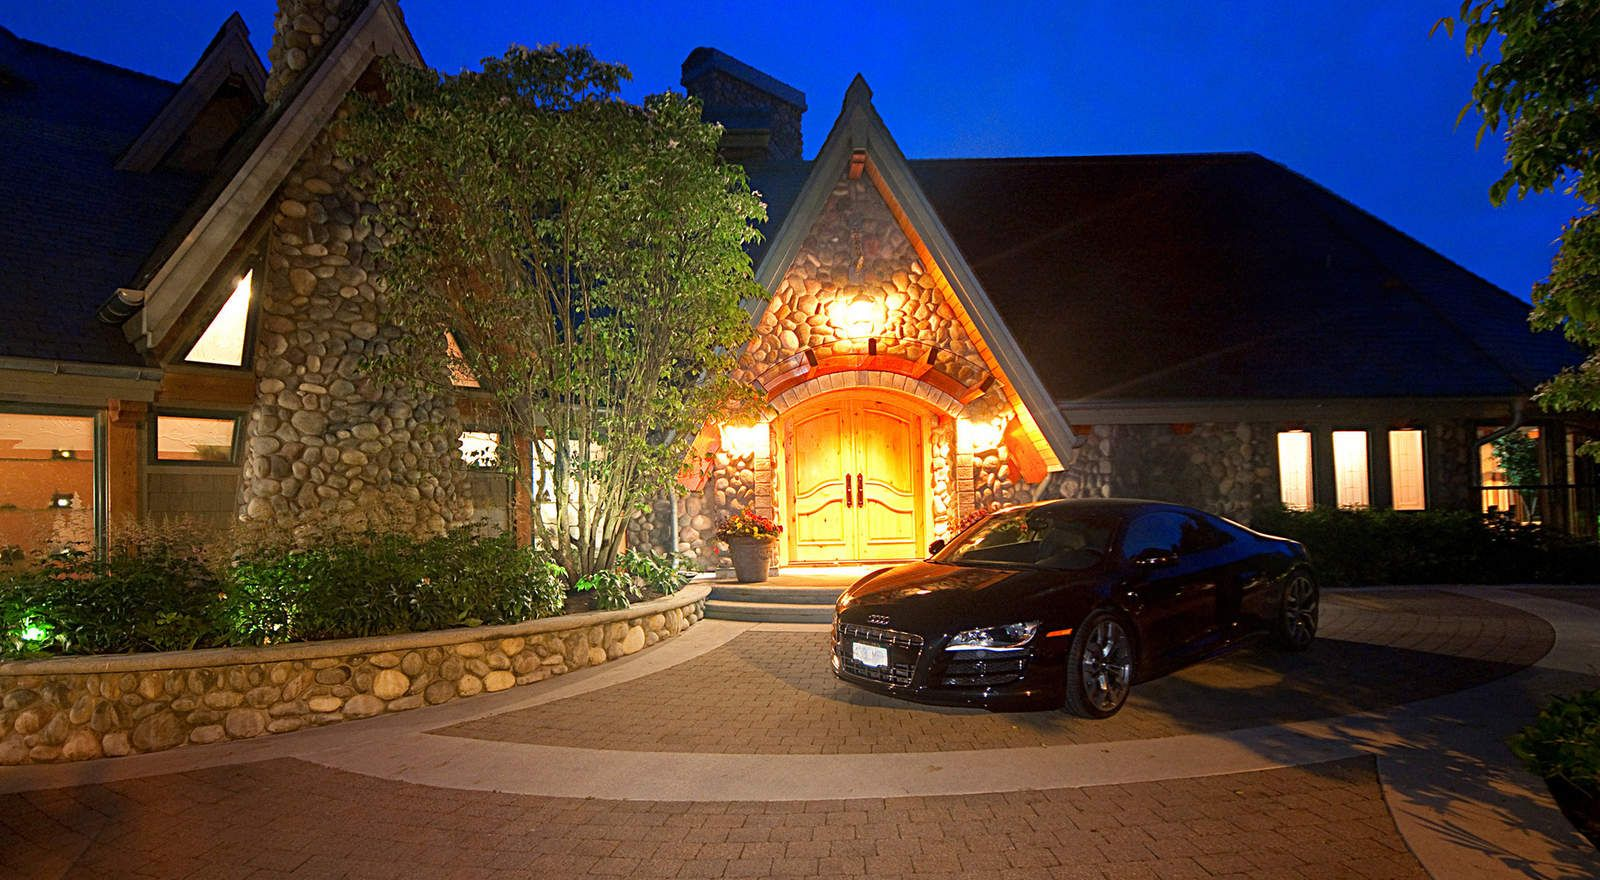 West Vancouver Homes And Real Estate Bc Canada Mansions Luxury Homes Dream Houses Rich Home